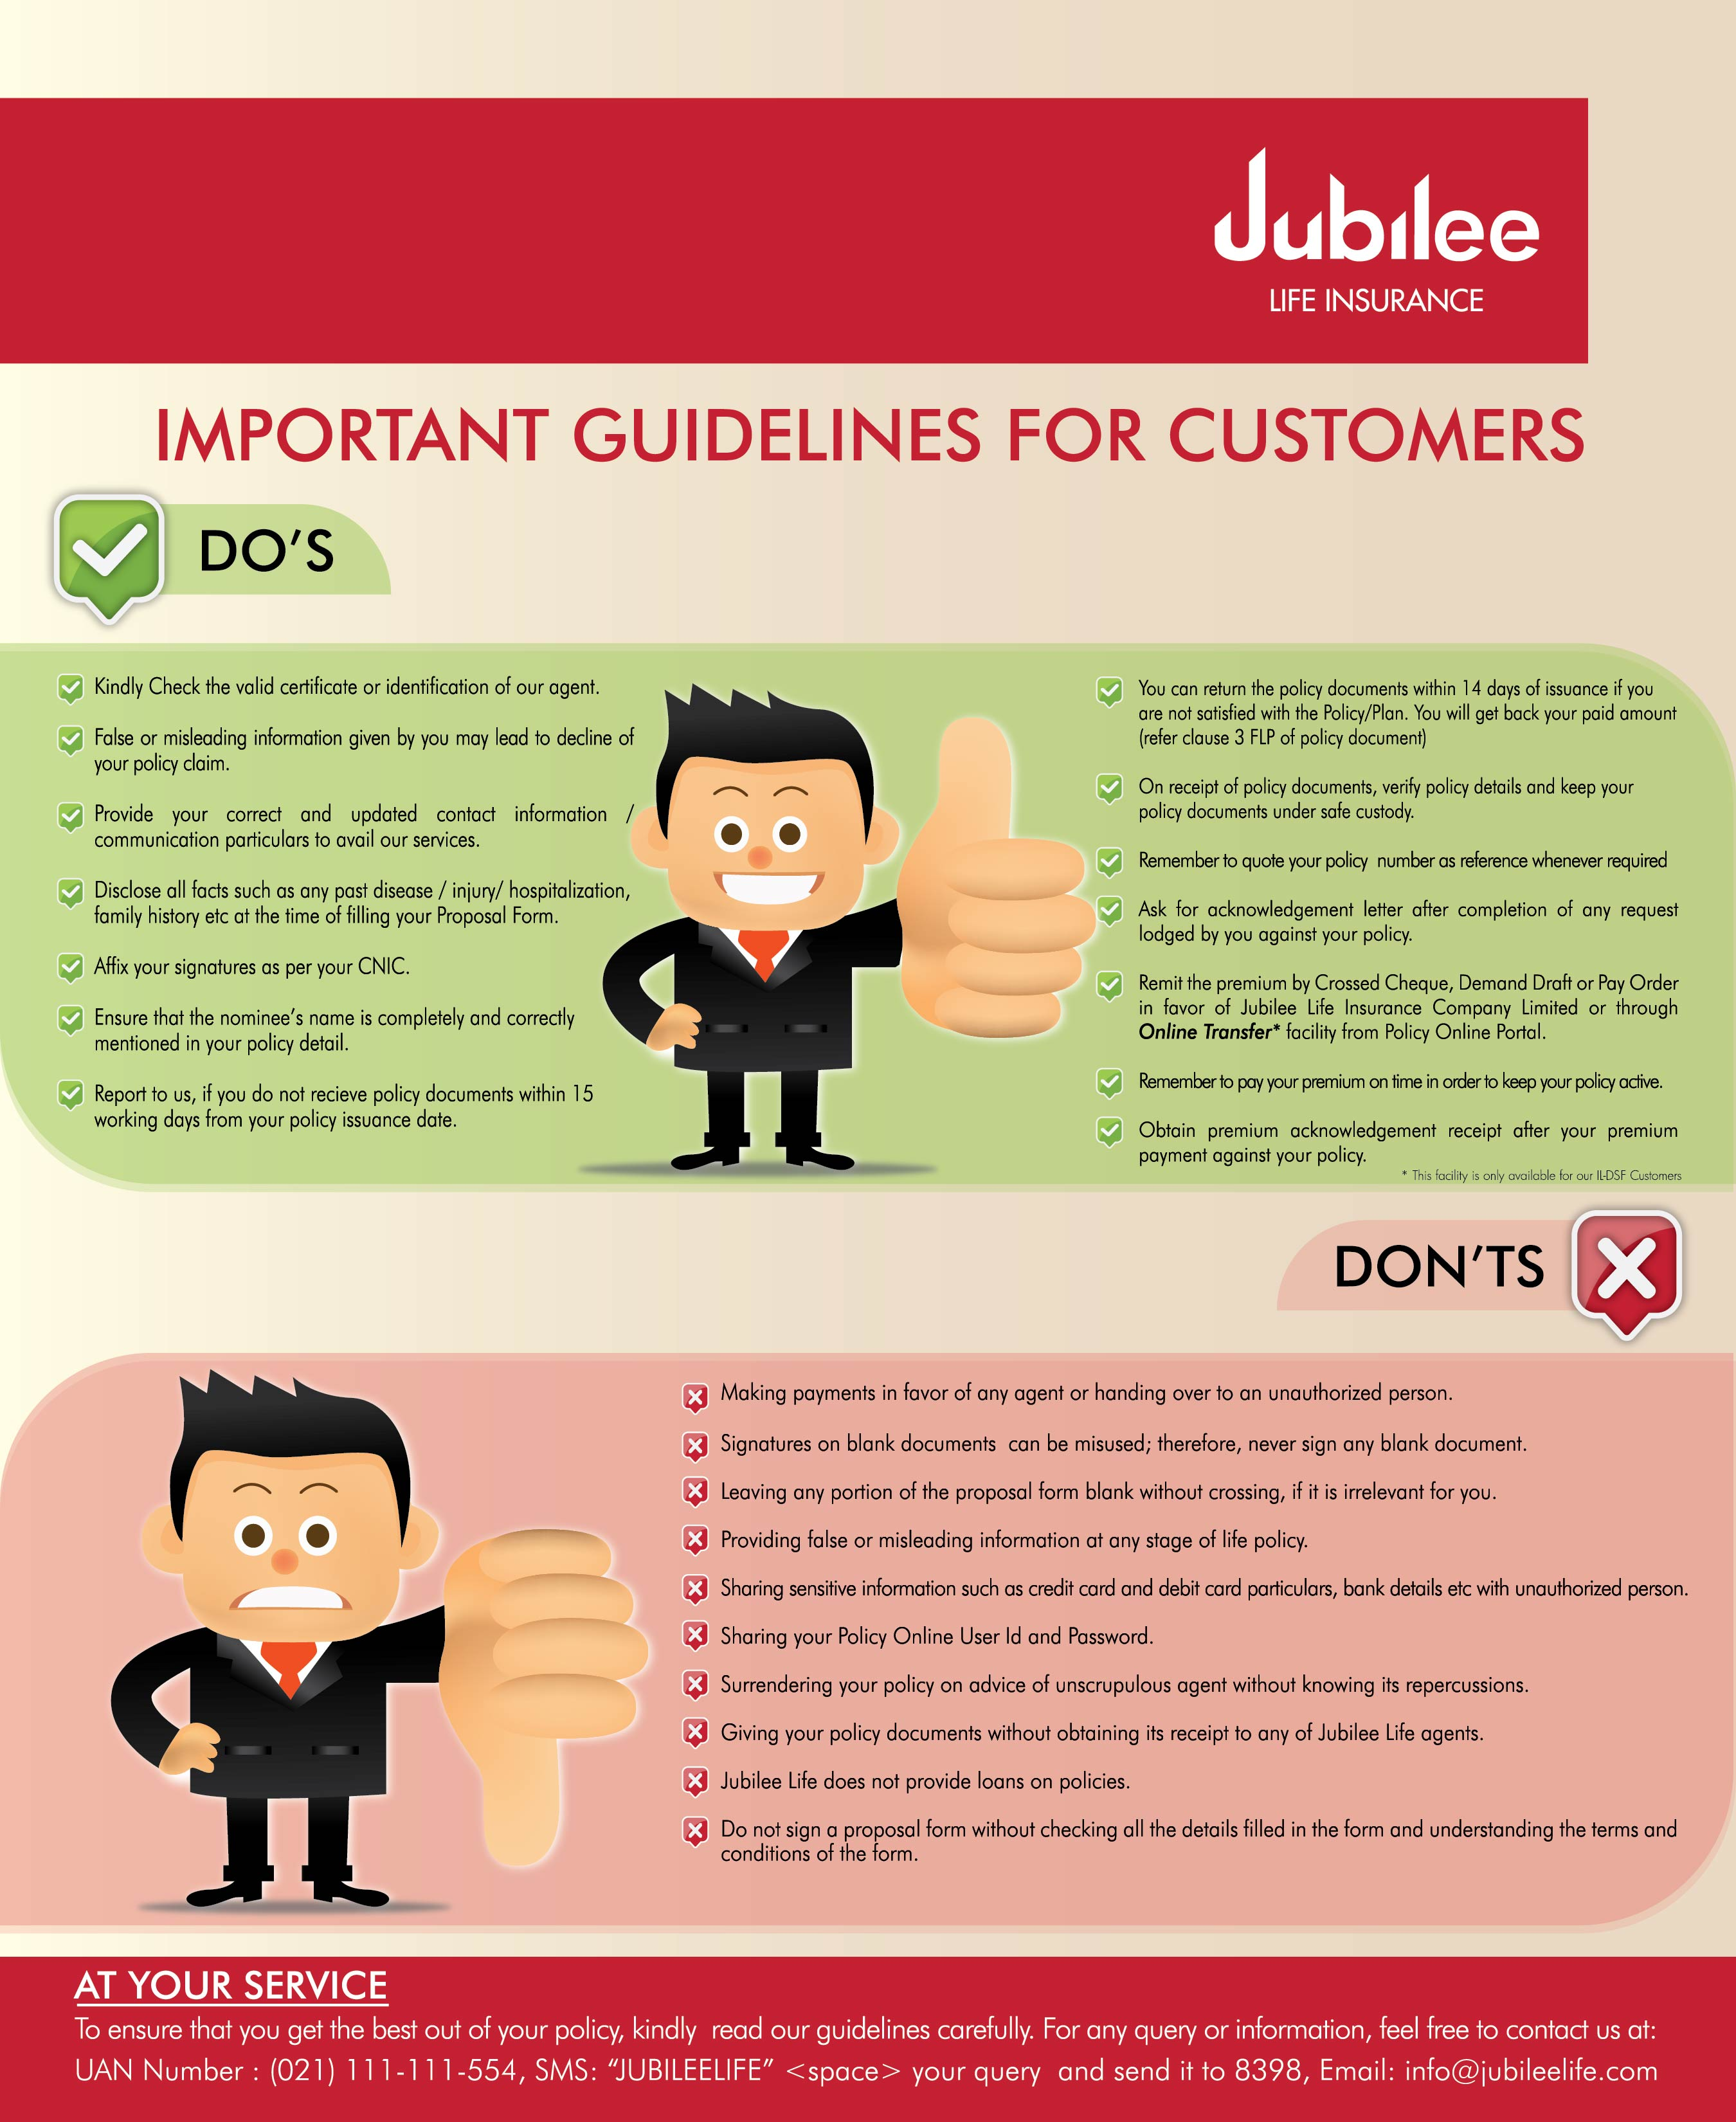 Poster Dos And Donts Eng Jpg Jubilee Life